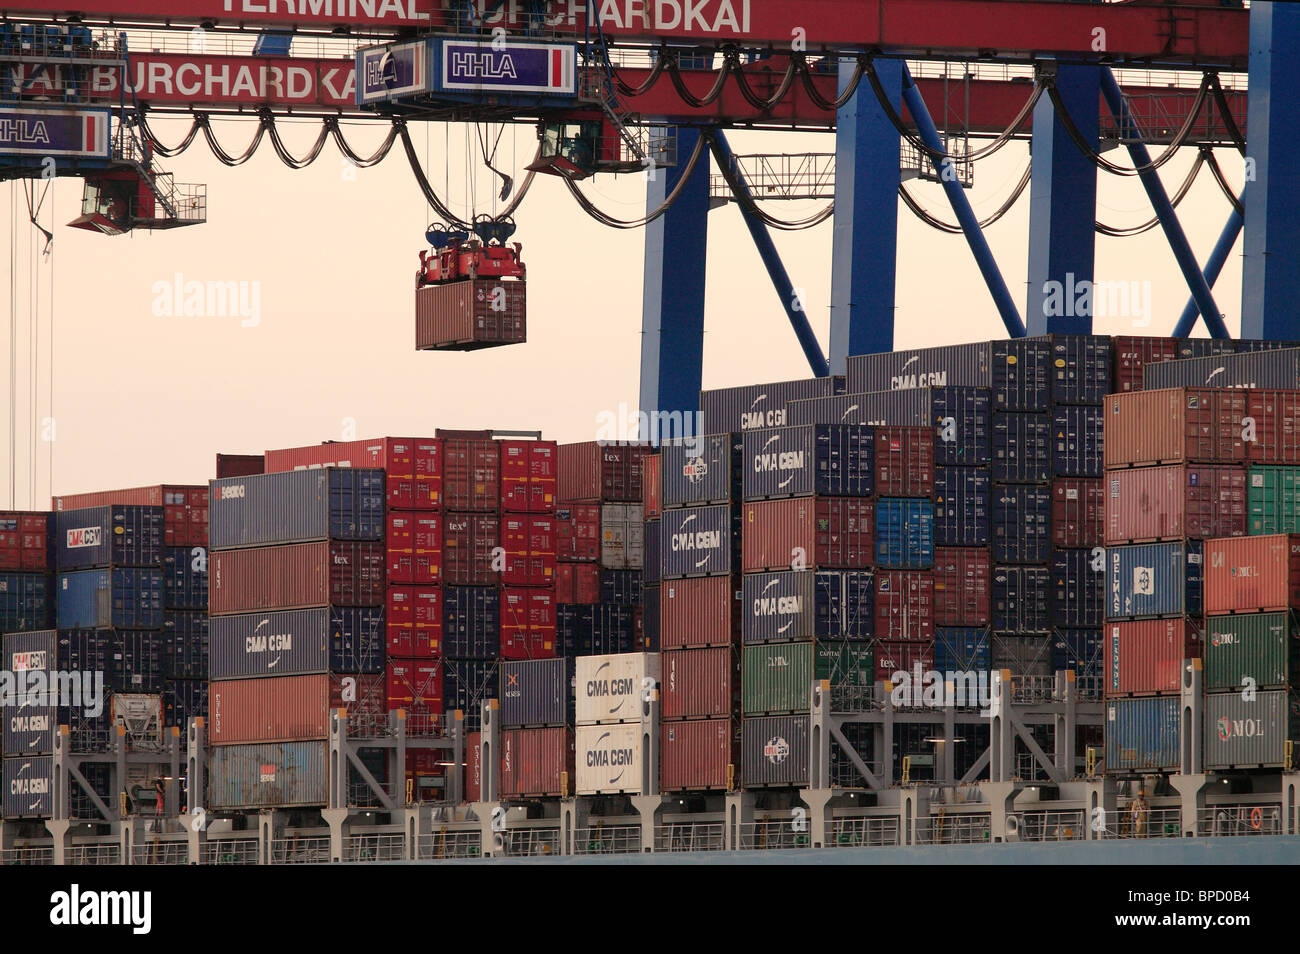 A container ship is being unloaded at the Container Terminal Burchardkai, Hamburg, Germany Stock Photo